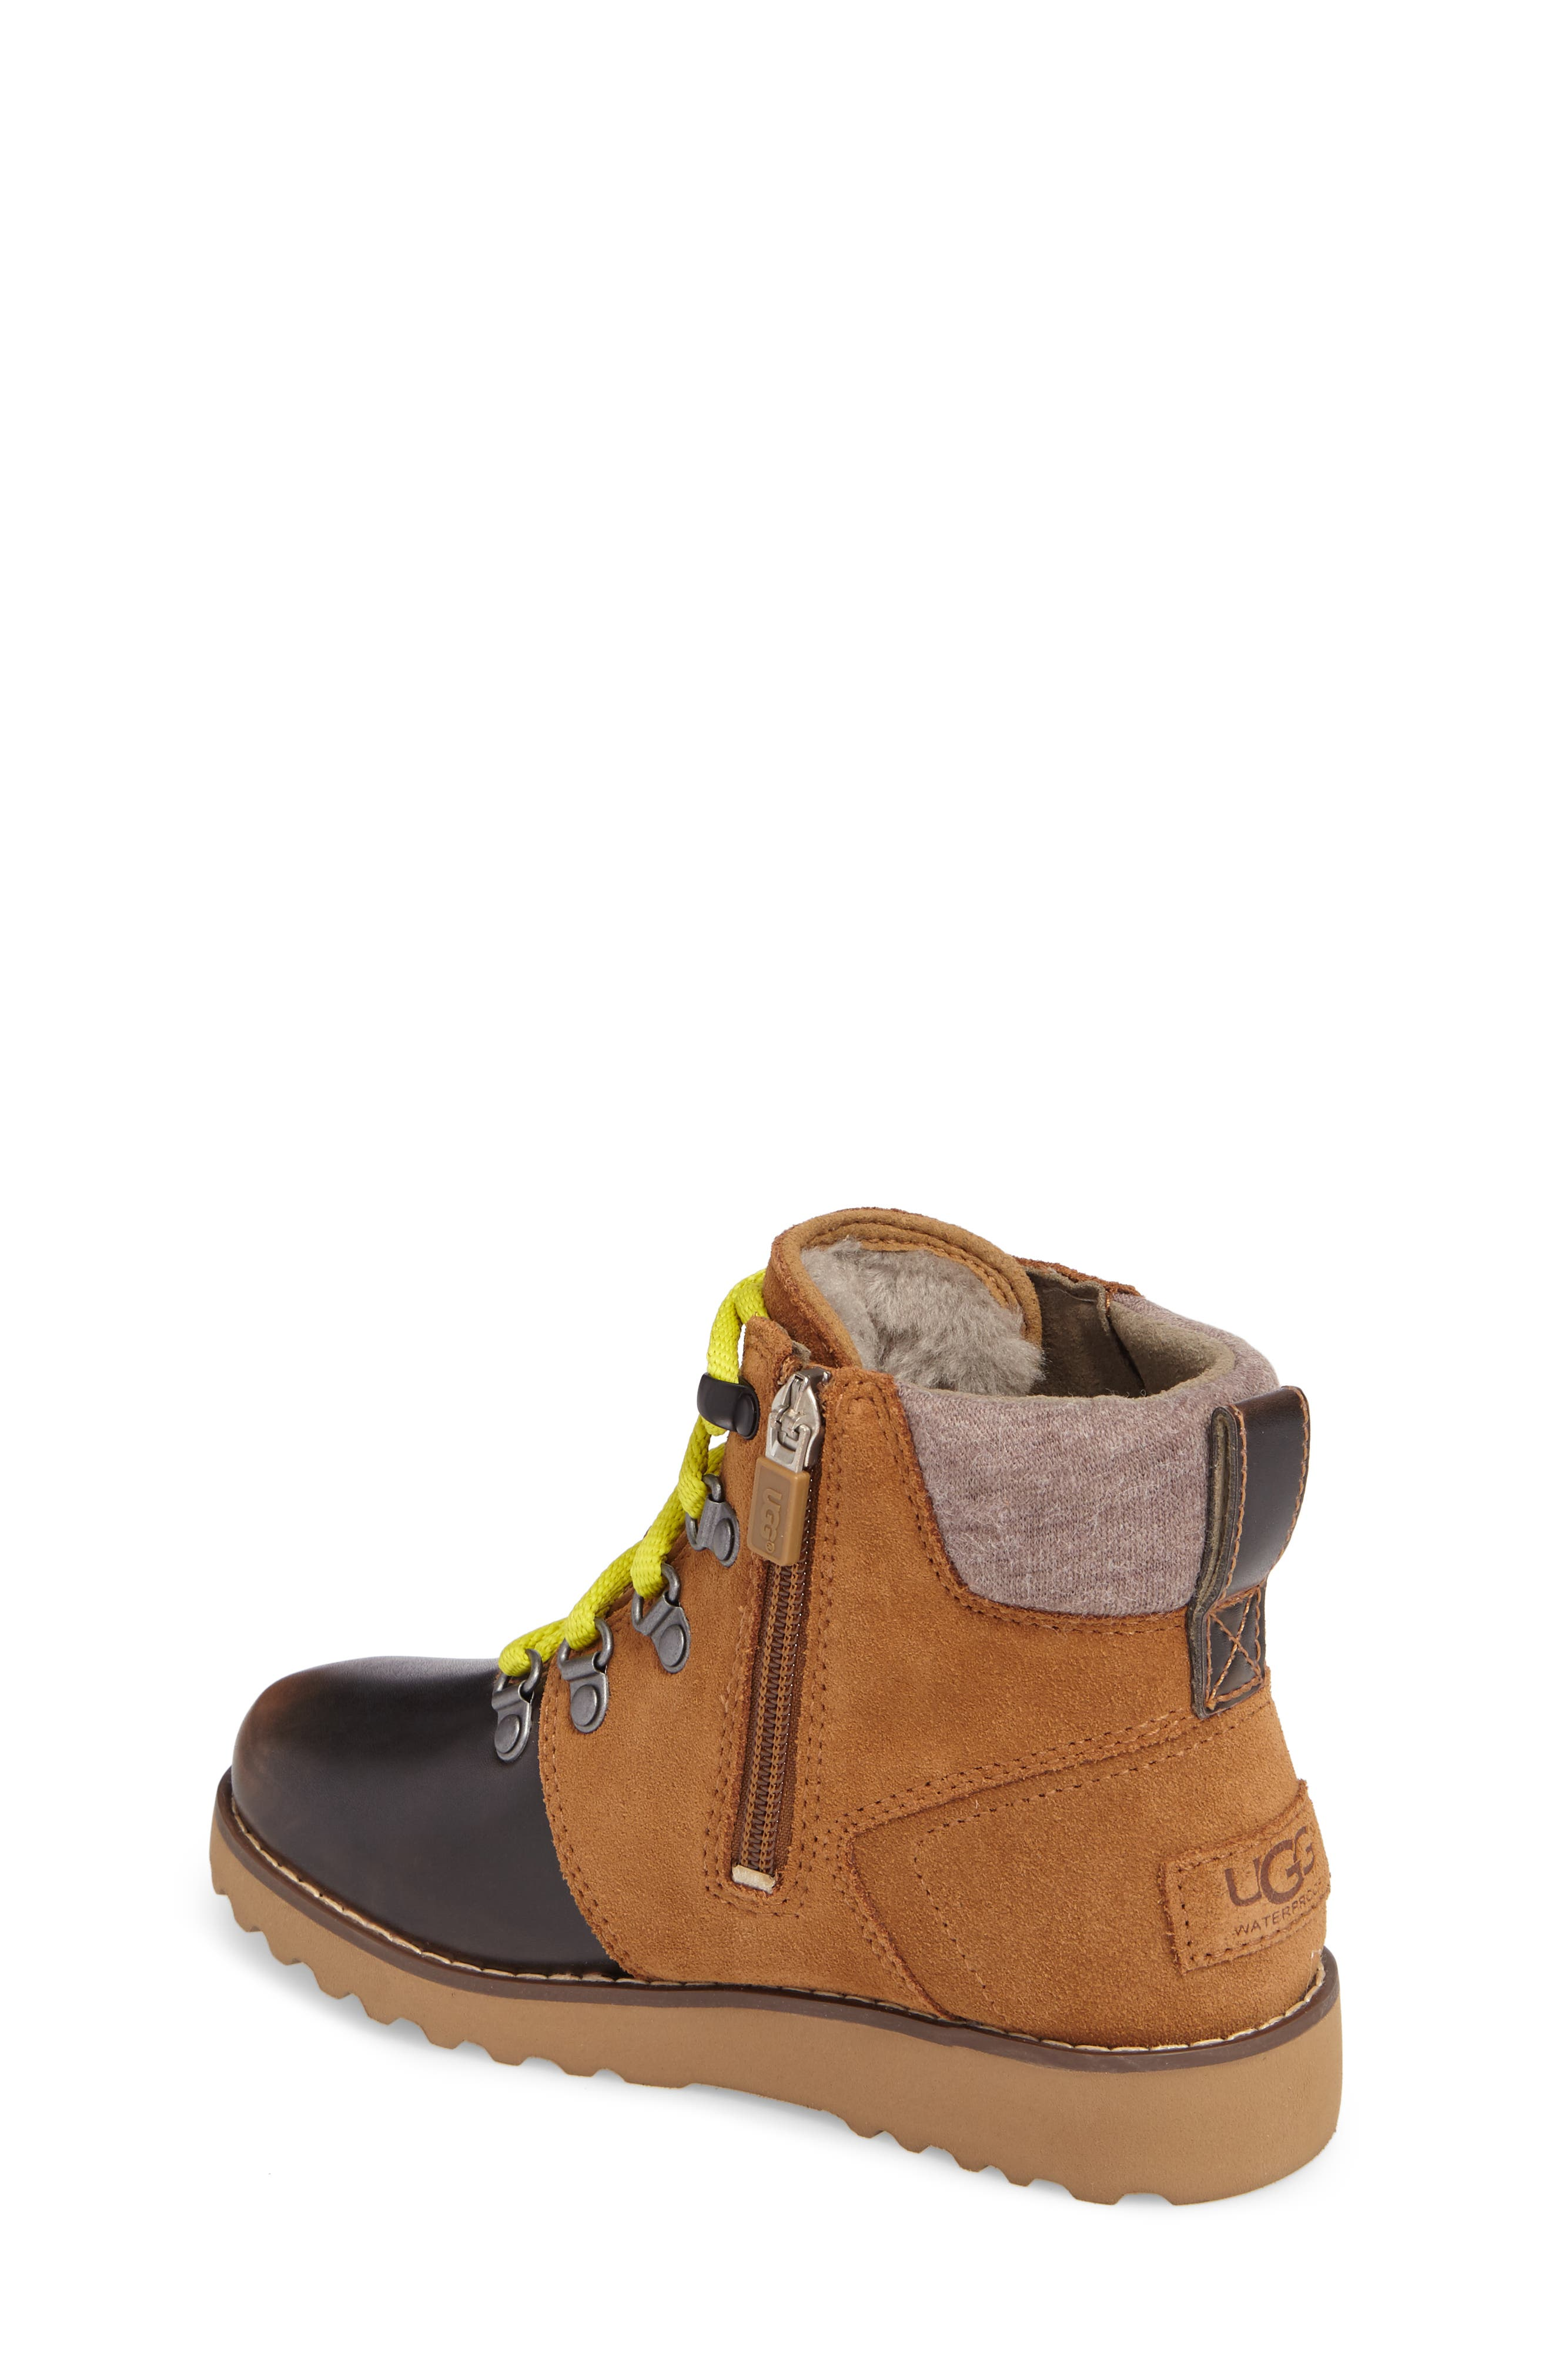 Hilmar Waterproof Winter Hiking Boot,                             Alternate thumbnail 2, color,                             Grizzly